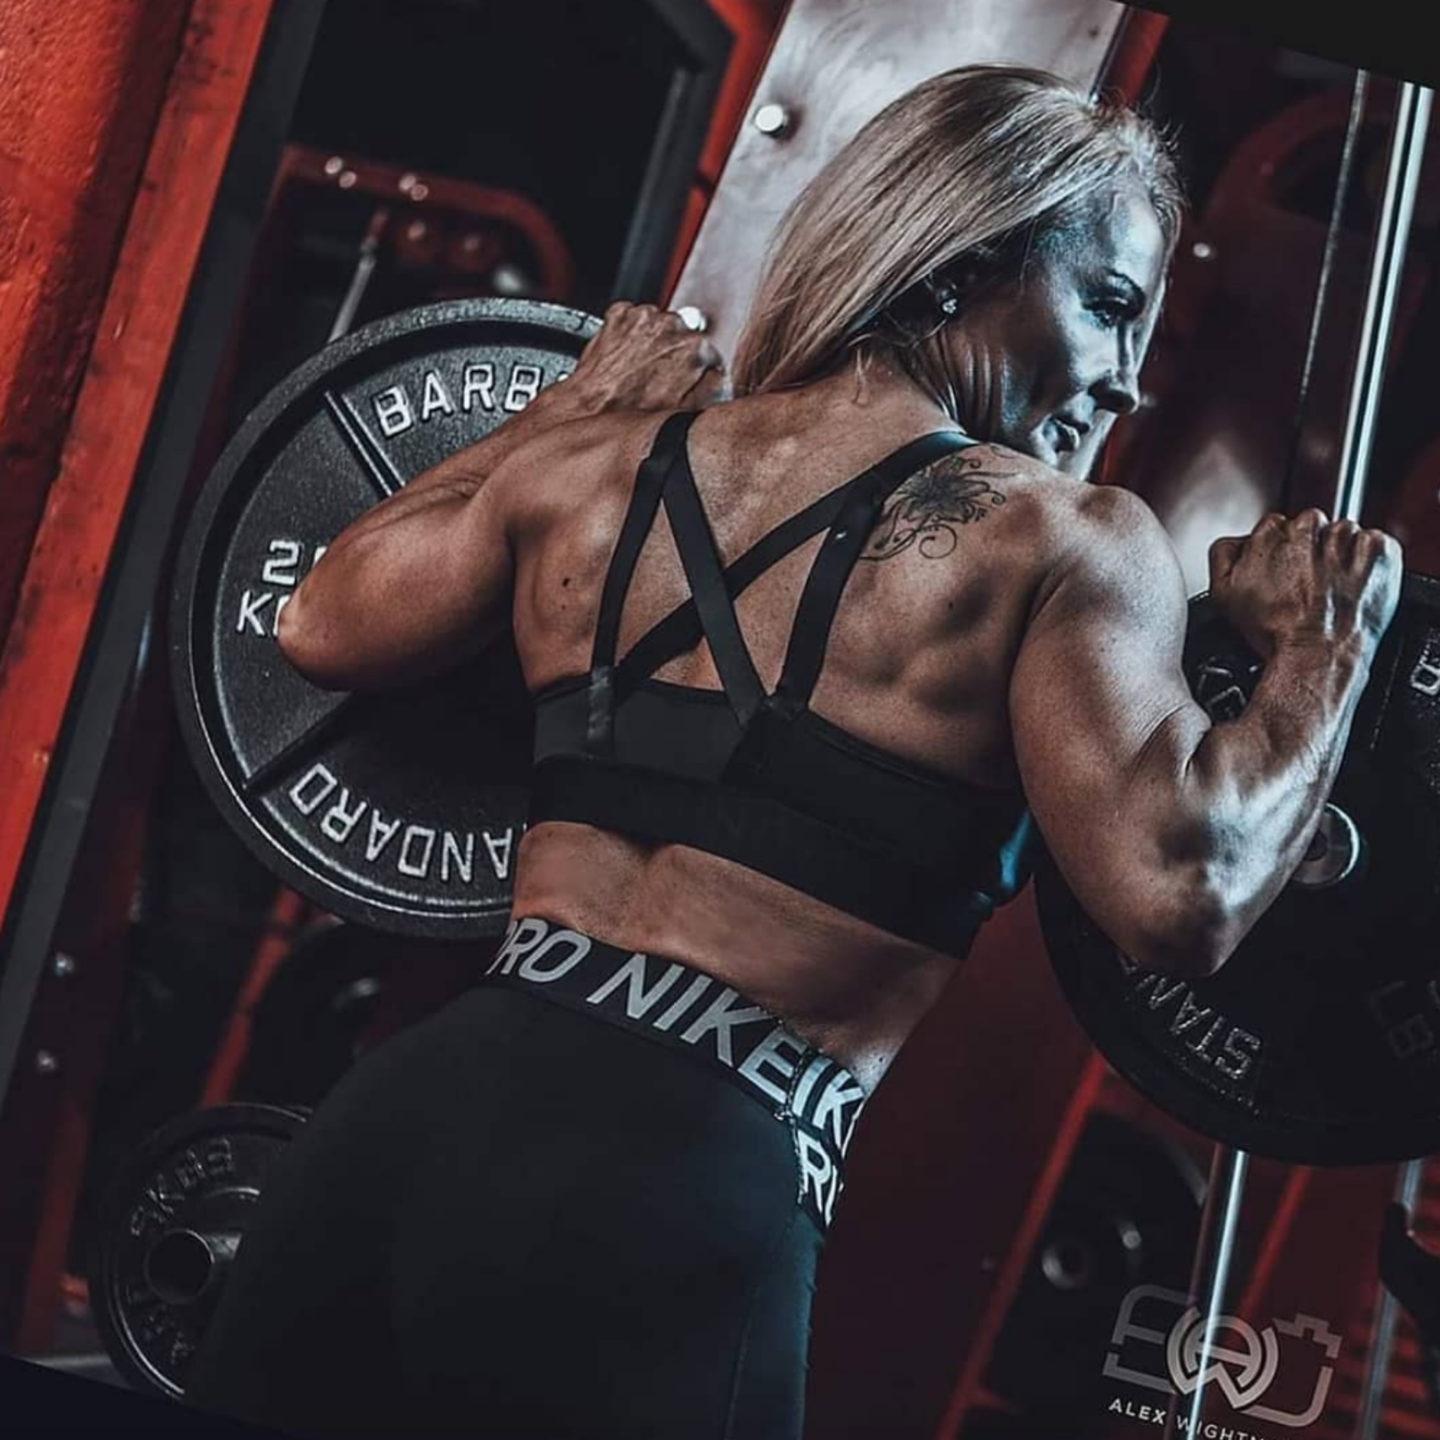 Pro Physiques Posing days